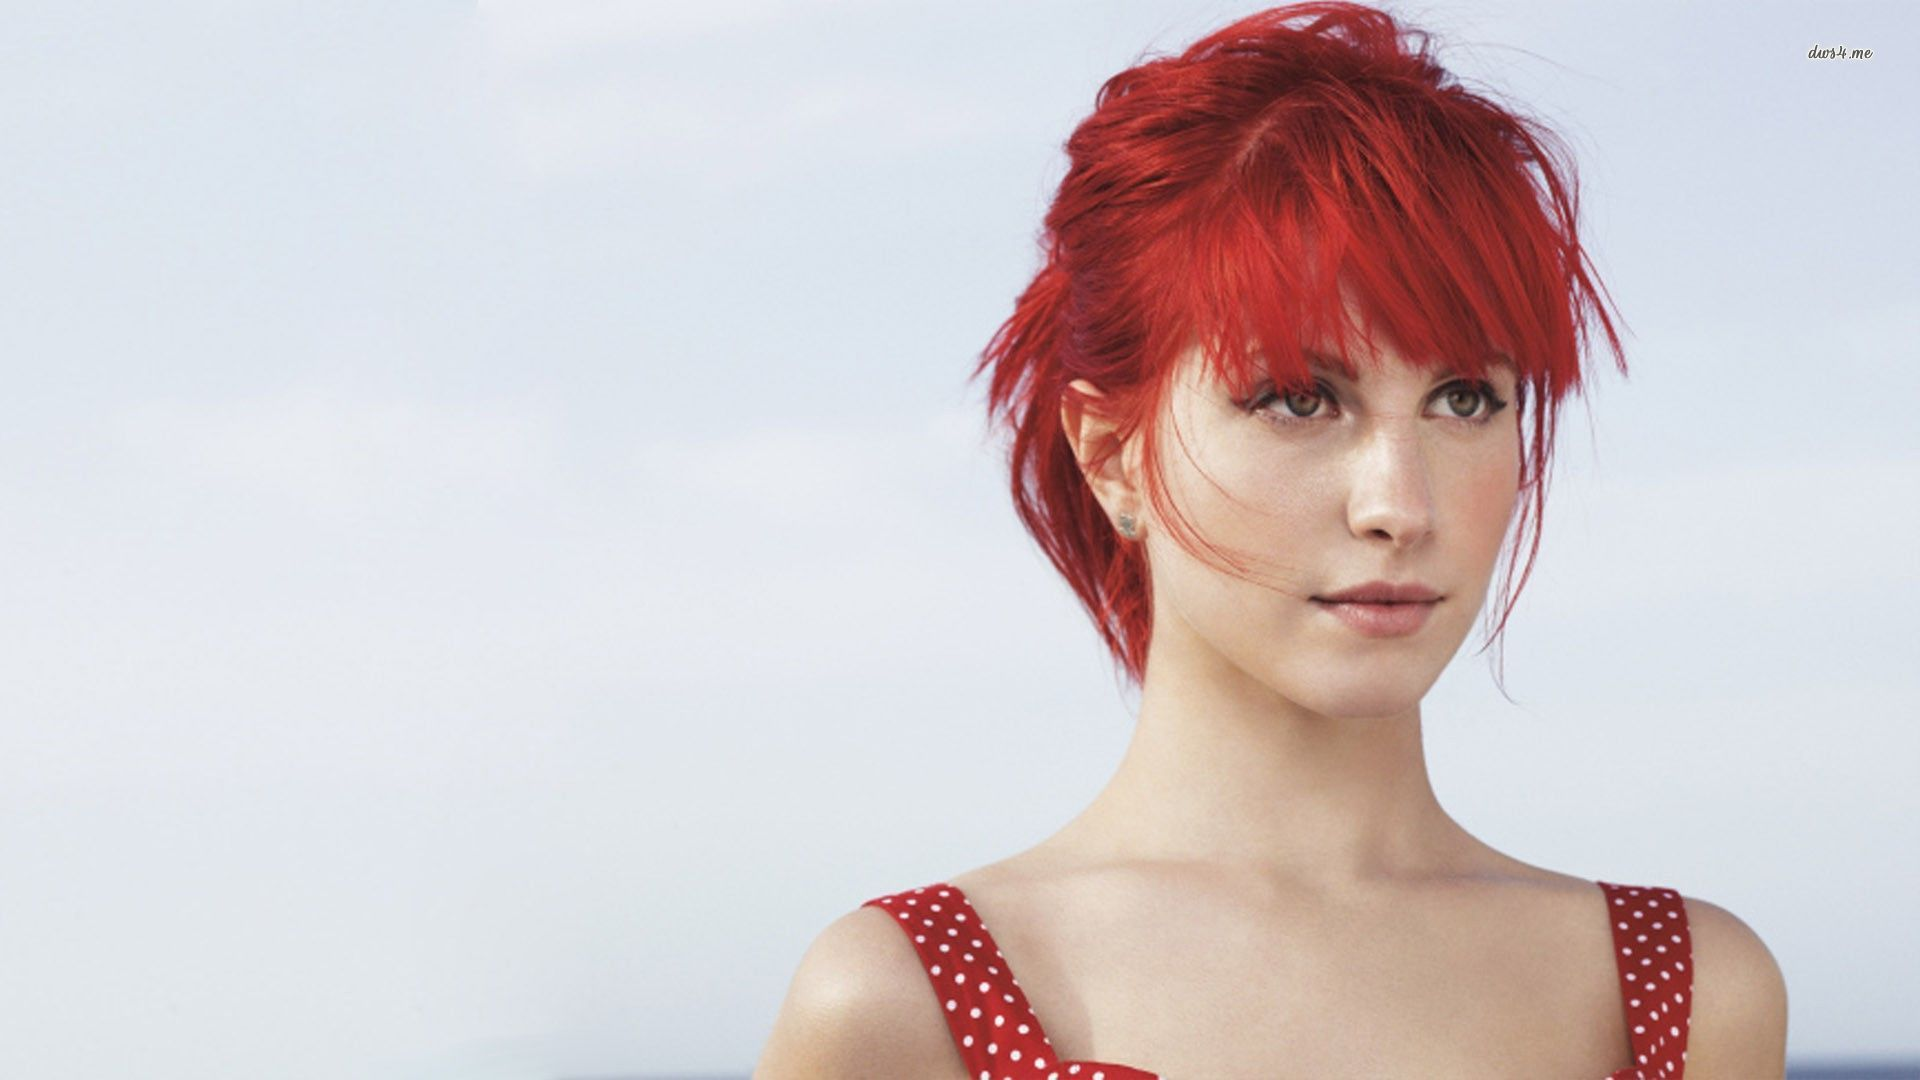 Hayley Williams Wallpaper Hayley Williams Wallpapers For 1920x1080